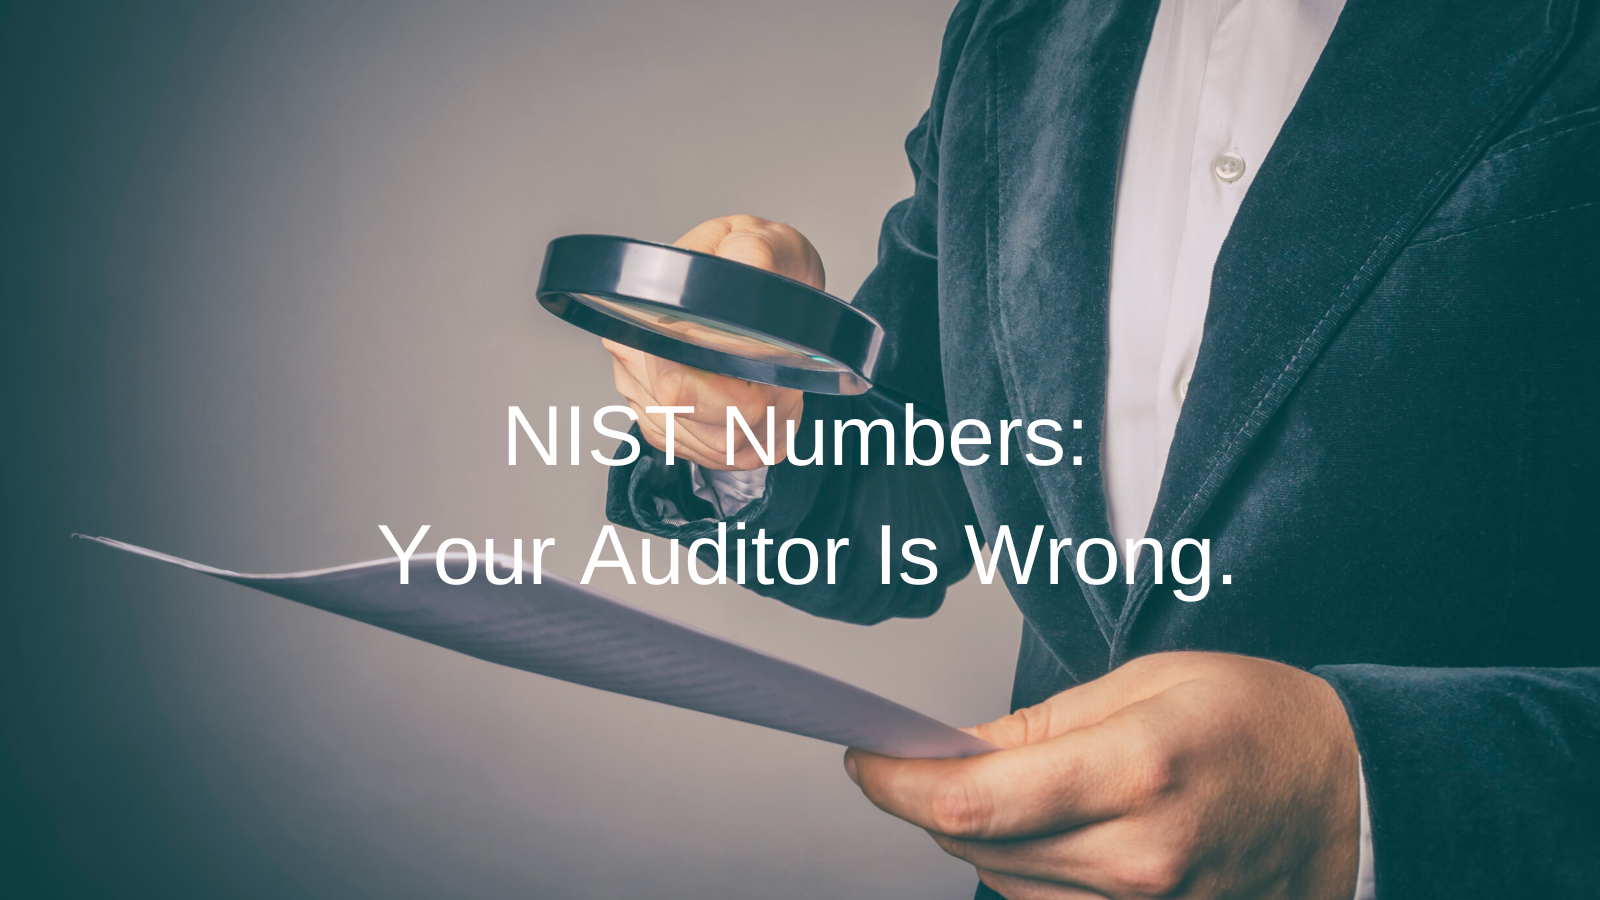 NIST Numbers_ Your Auditor Is Wrong_alliance calibration